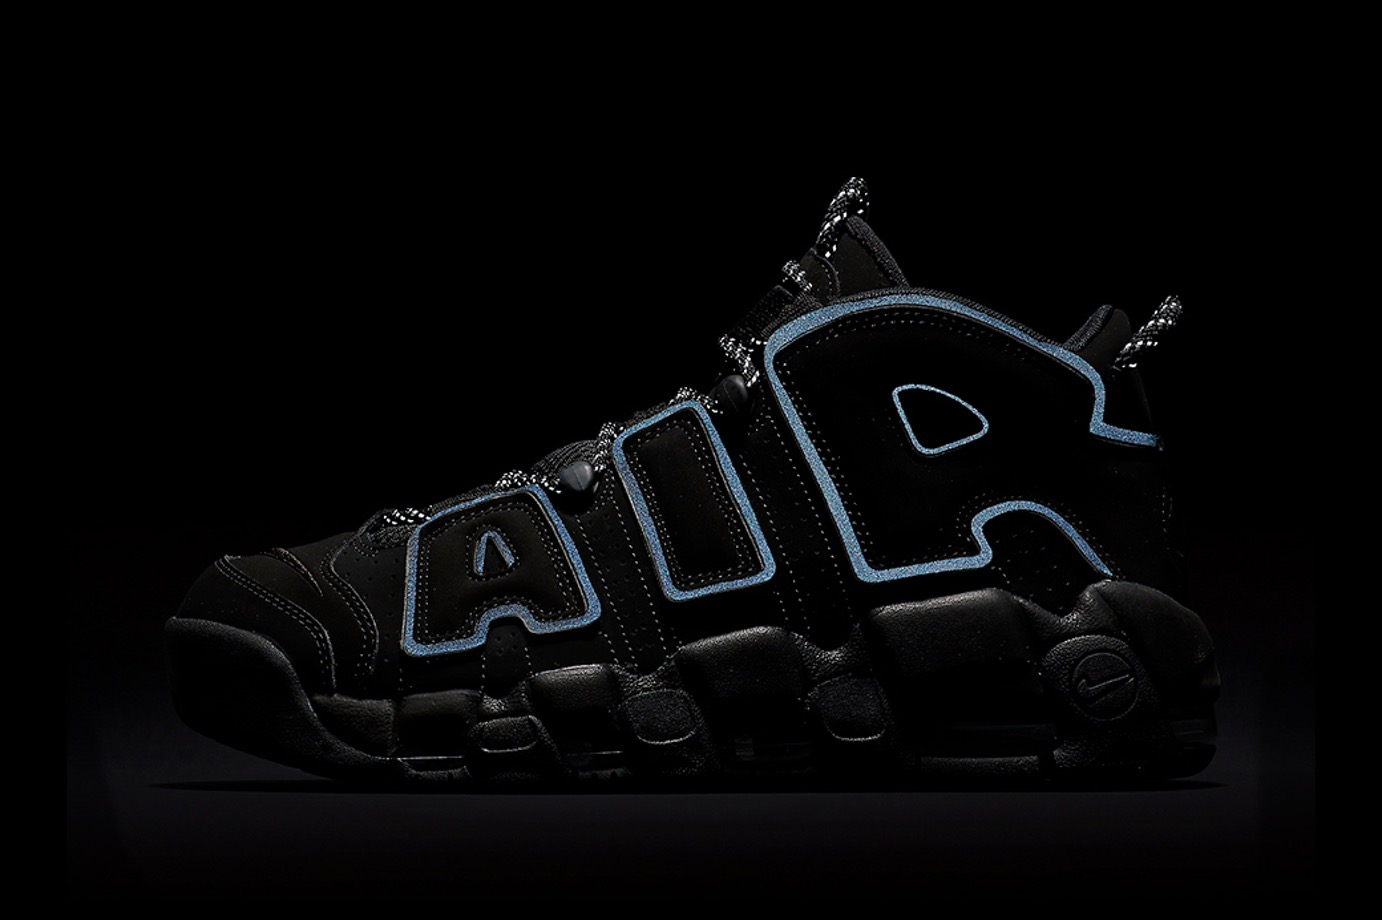 http---hypebeast.com-image-2017-04-nike-air-uptempo-triple-black-release-date-4